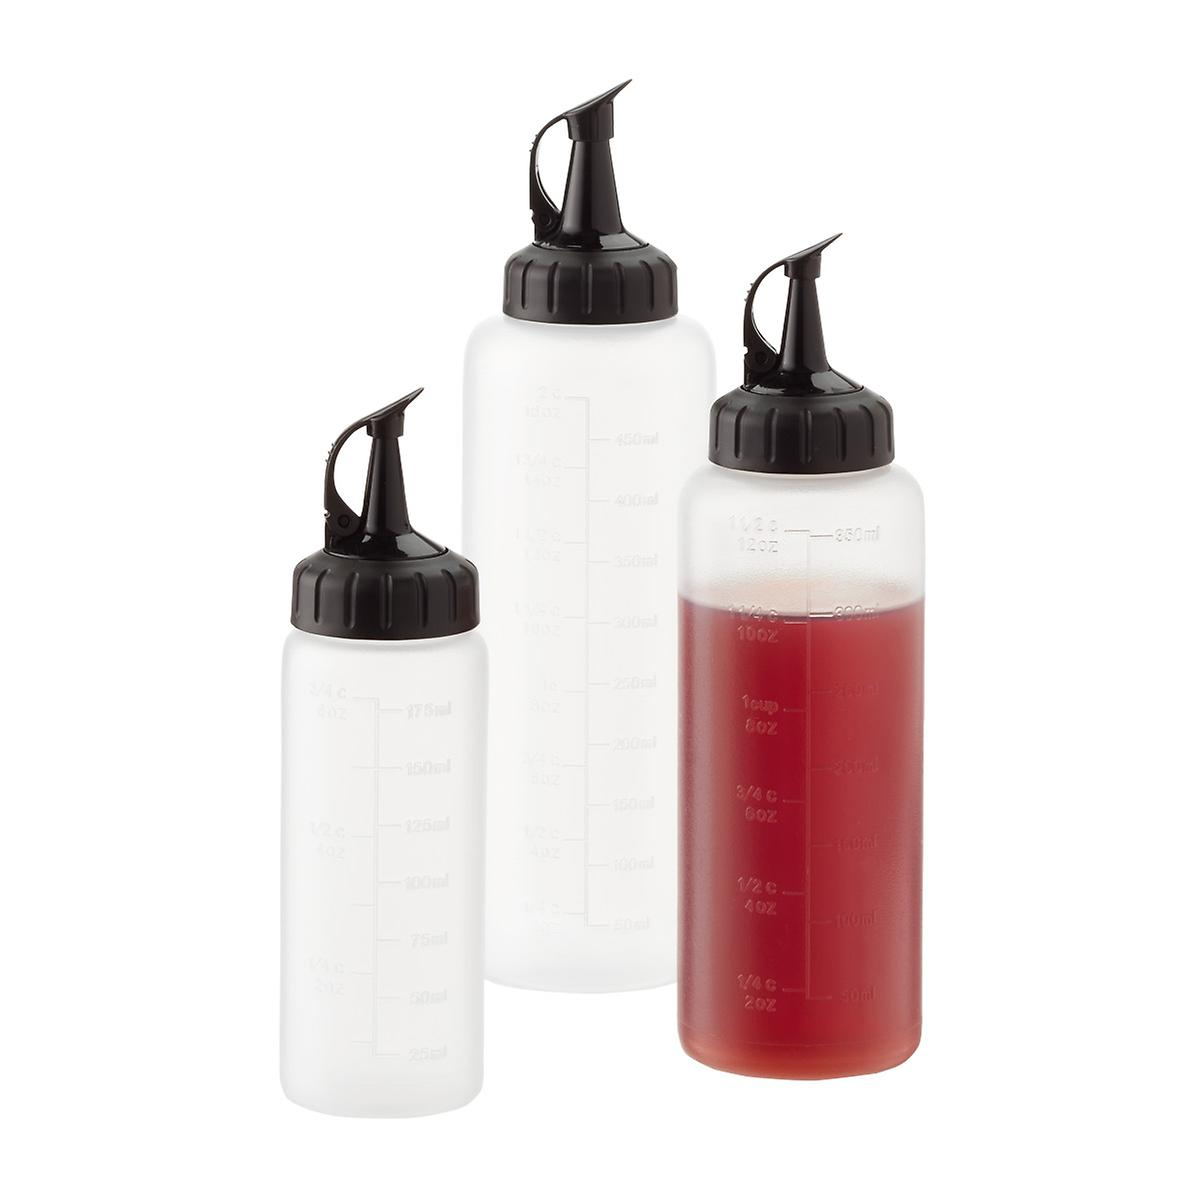 OXO Chef's Squeeze Bottles